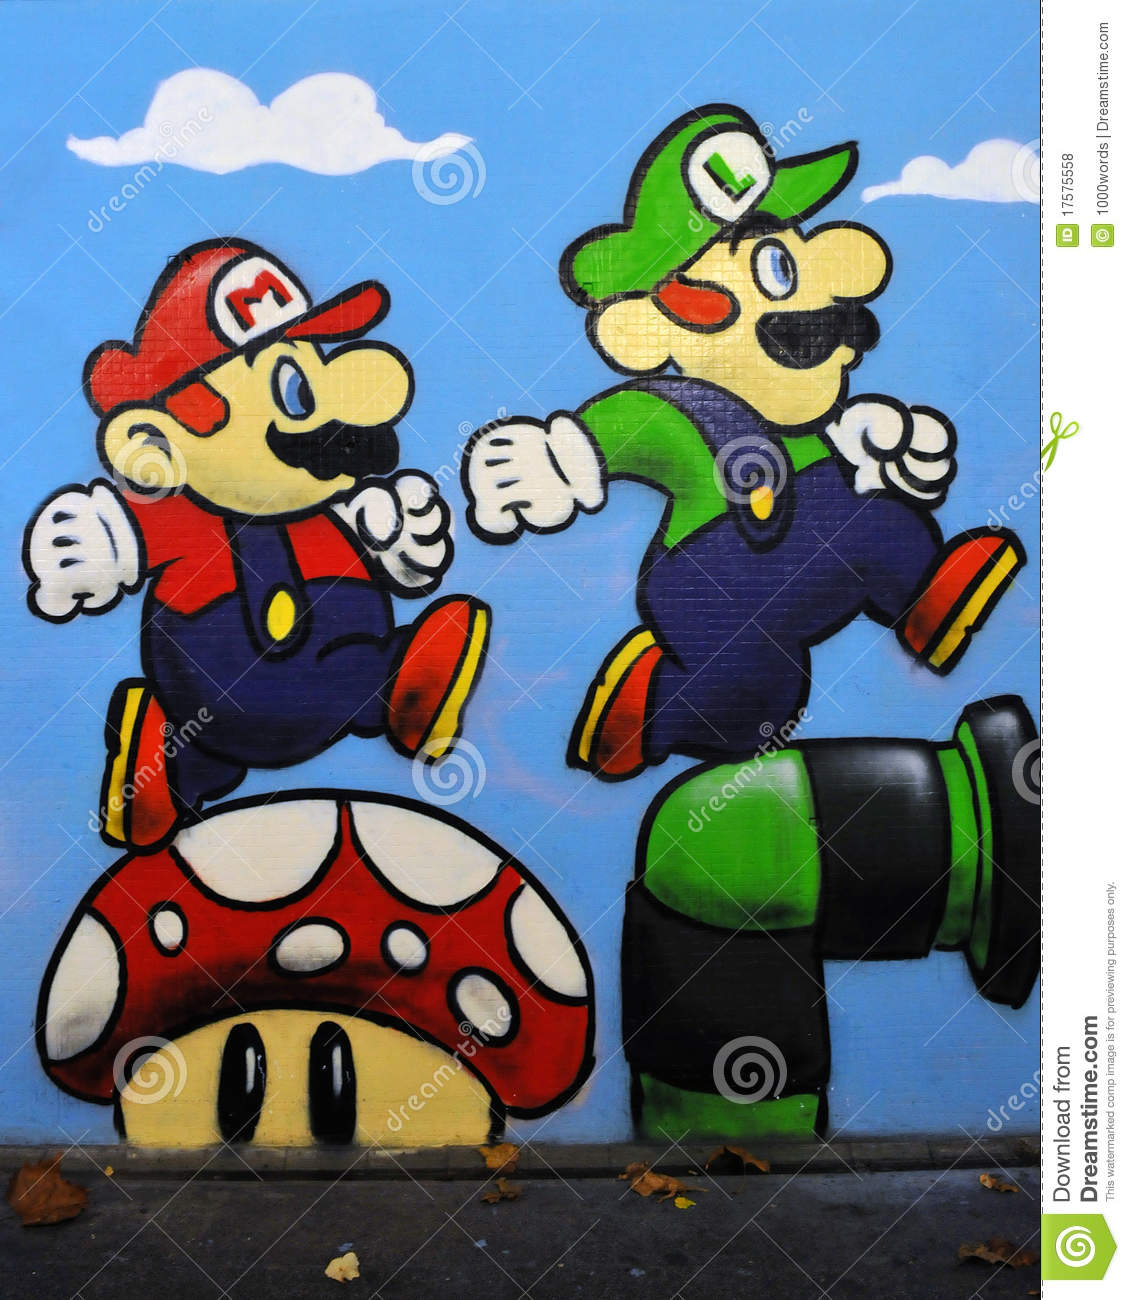 Graffiti De Mario Et De Luigi Du Jeu De Nintendo Photo Stock